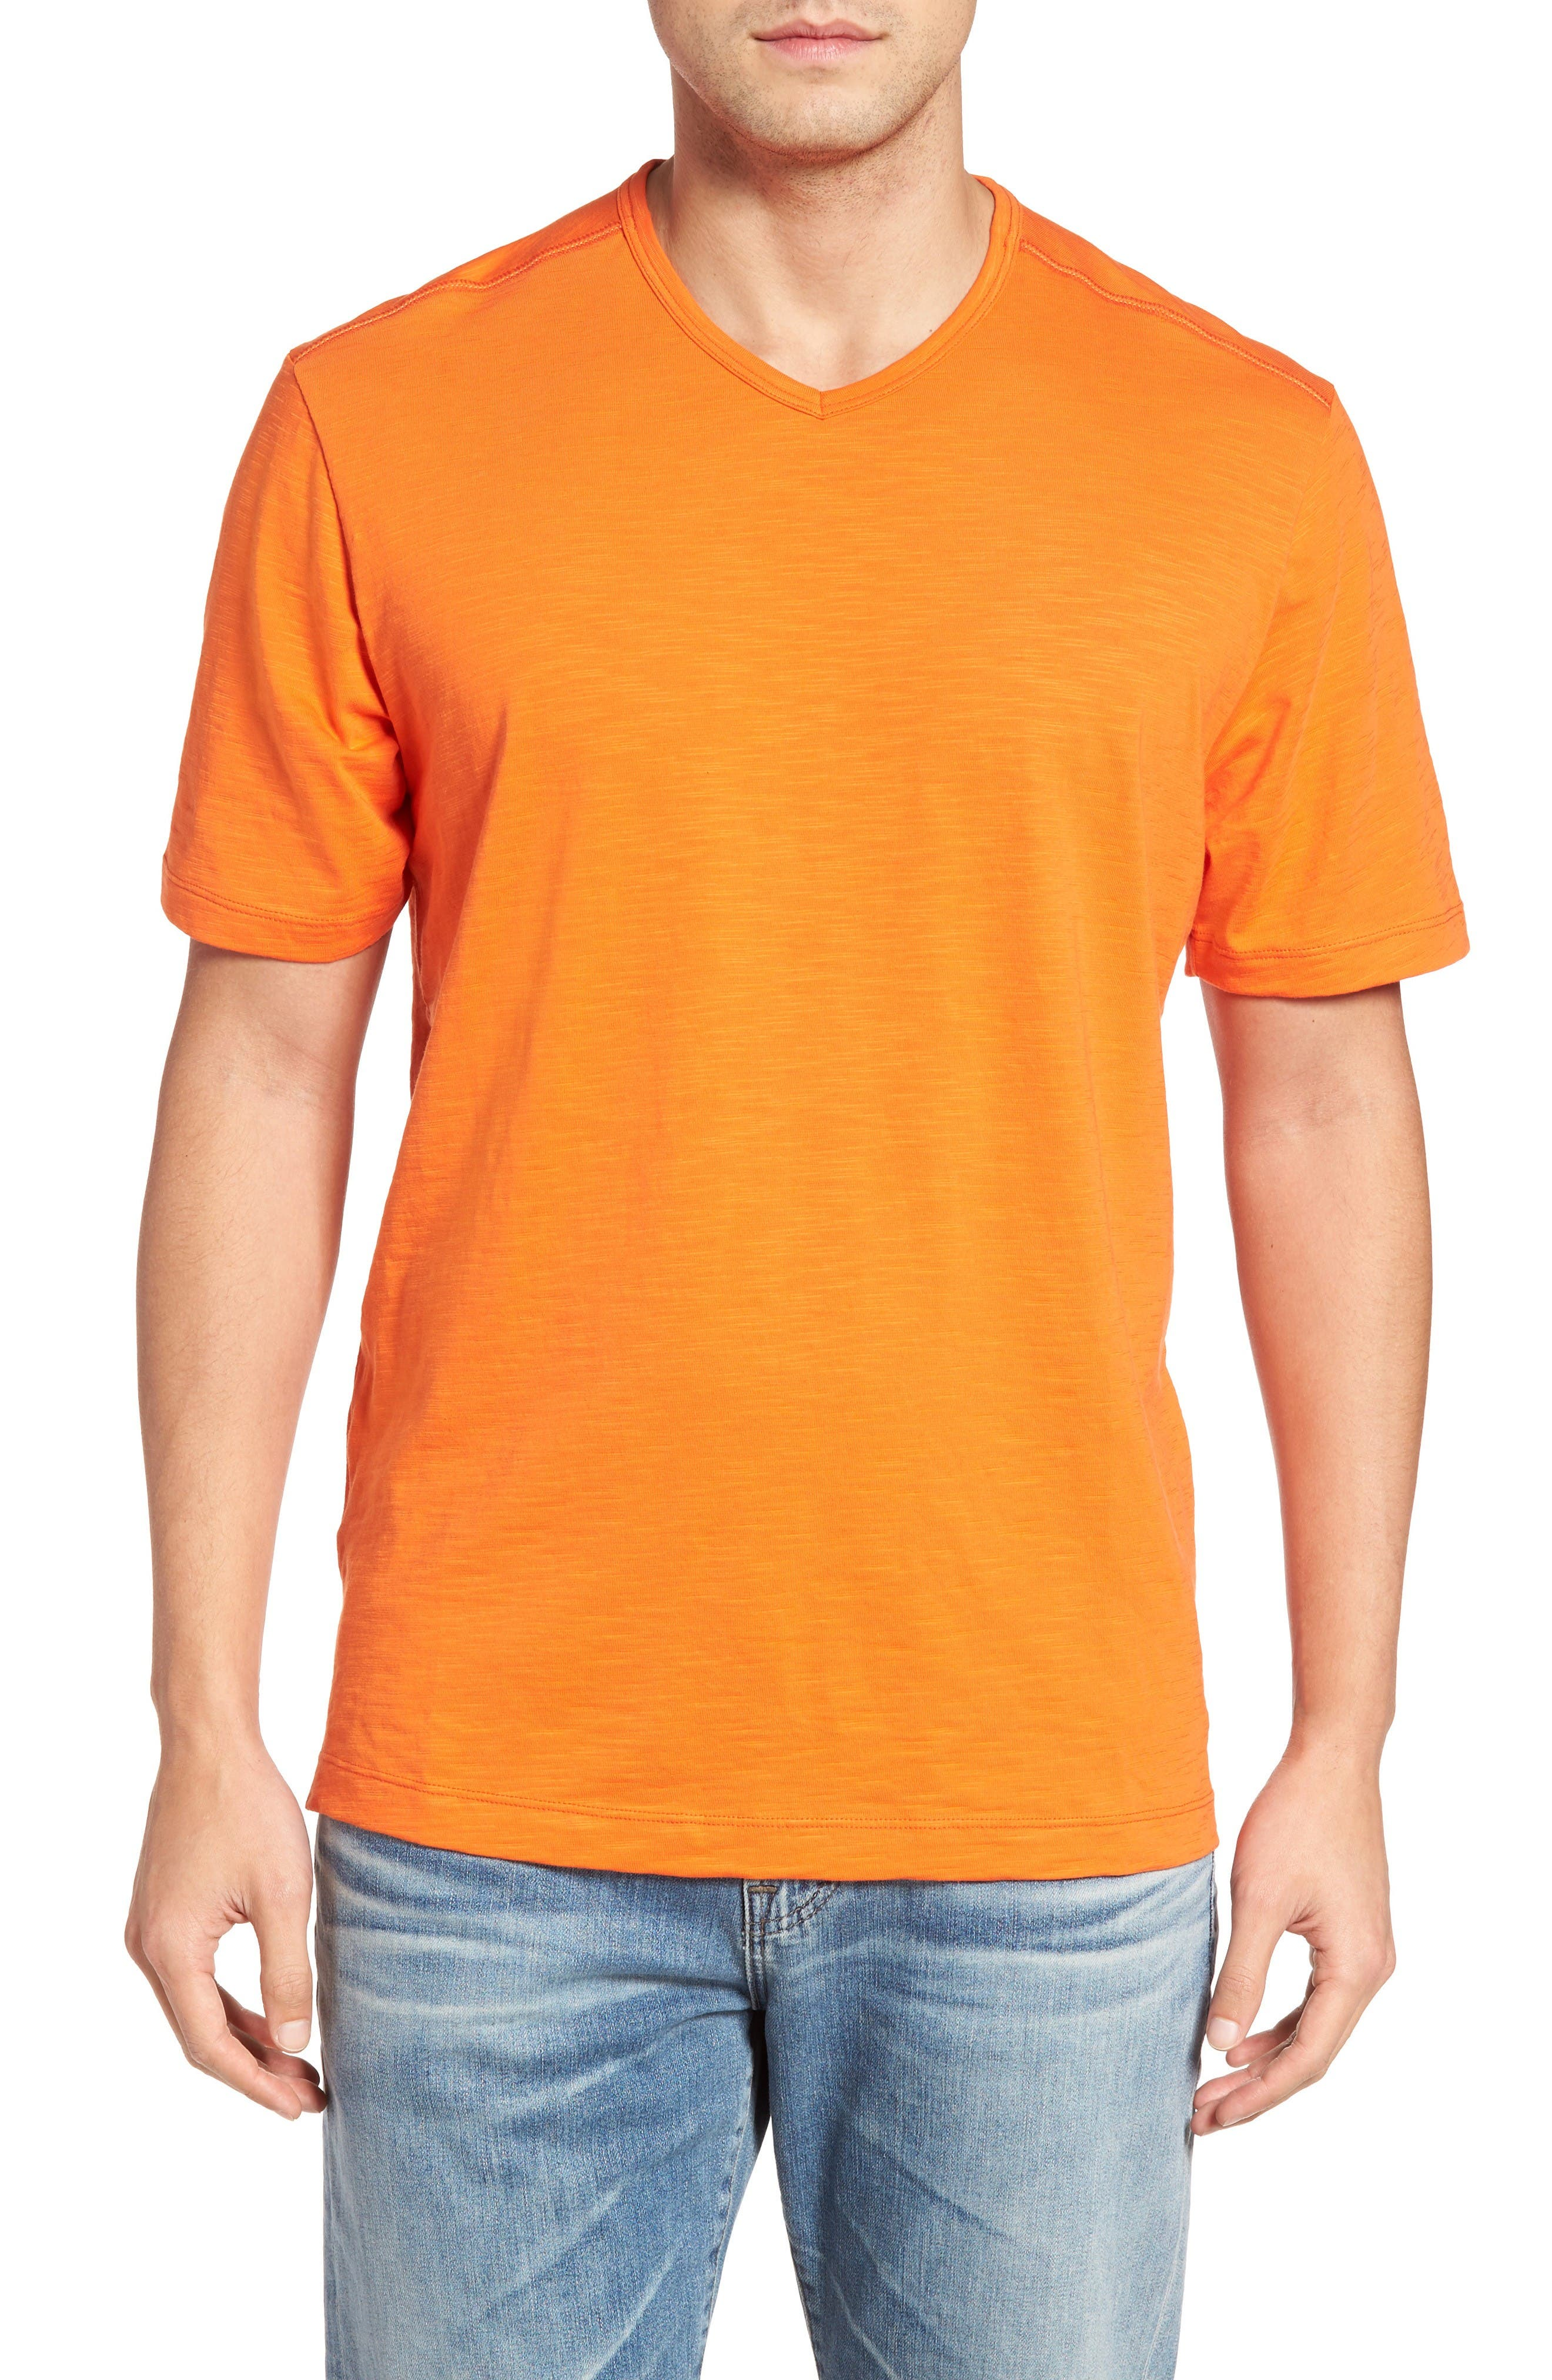 TOMMY BAHAMA Portside Player Pima Cotton T-Shirt